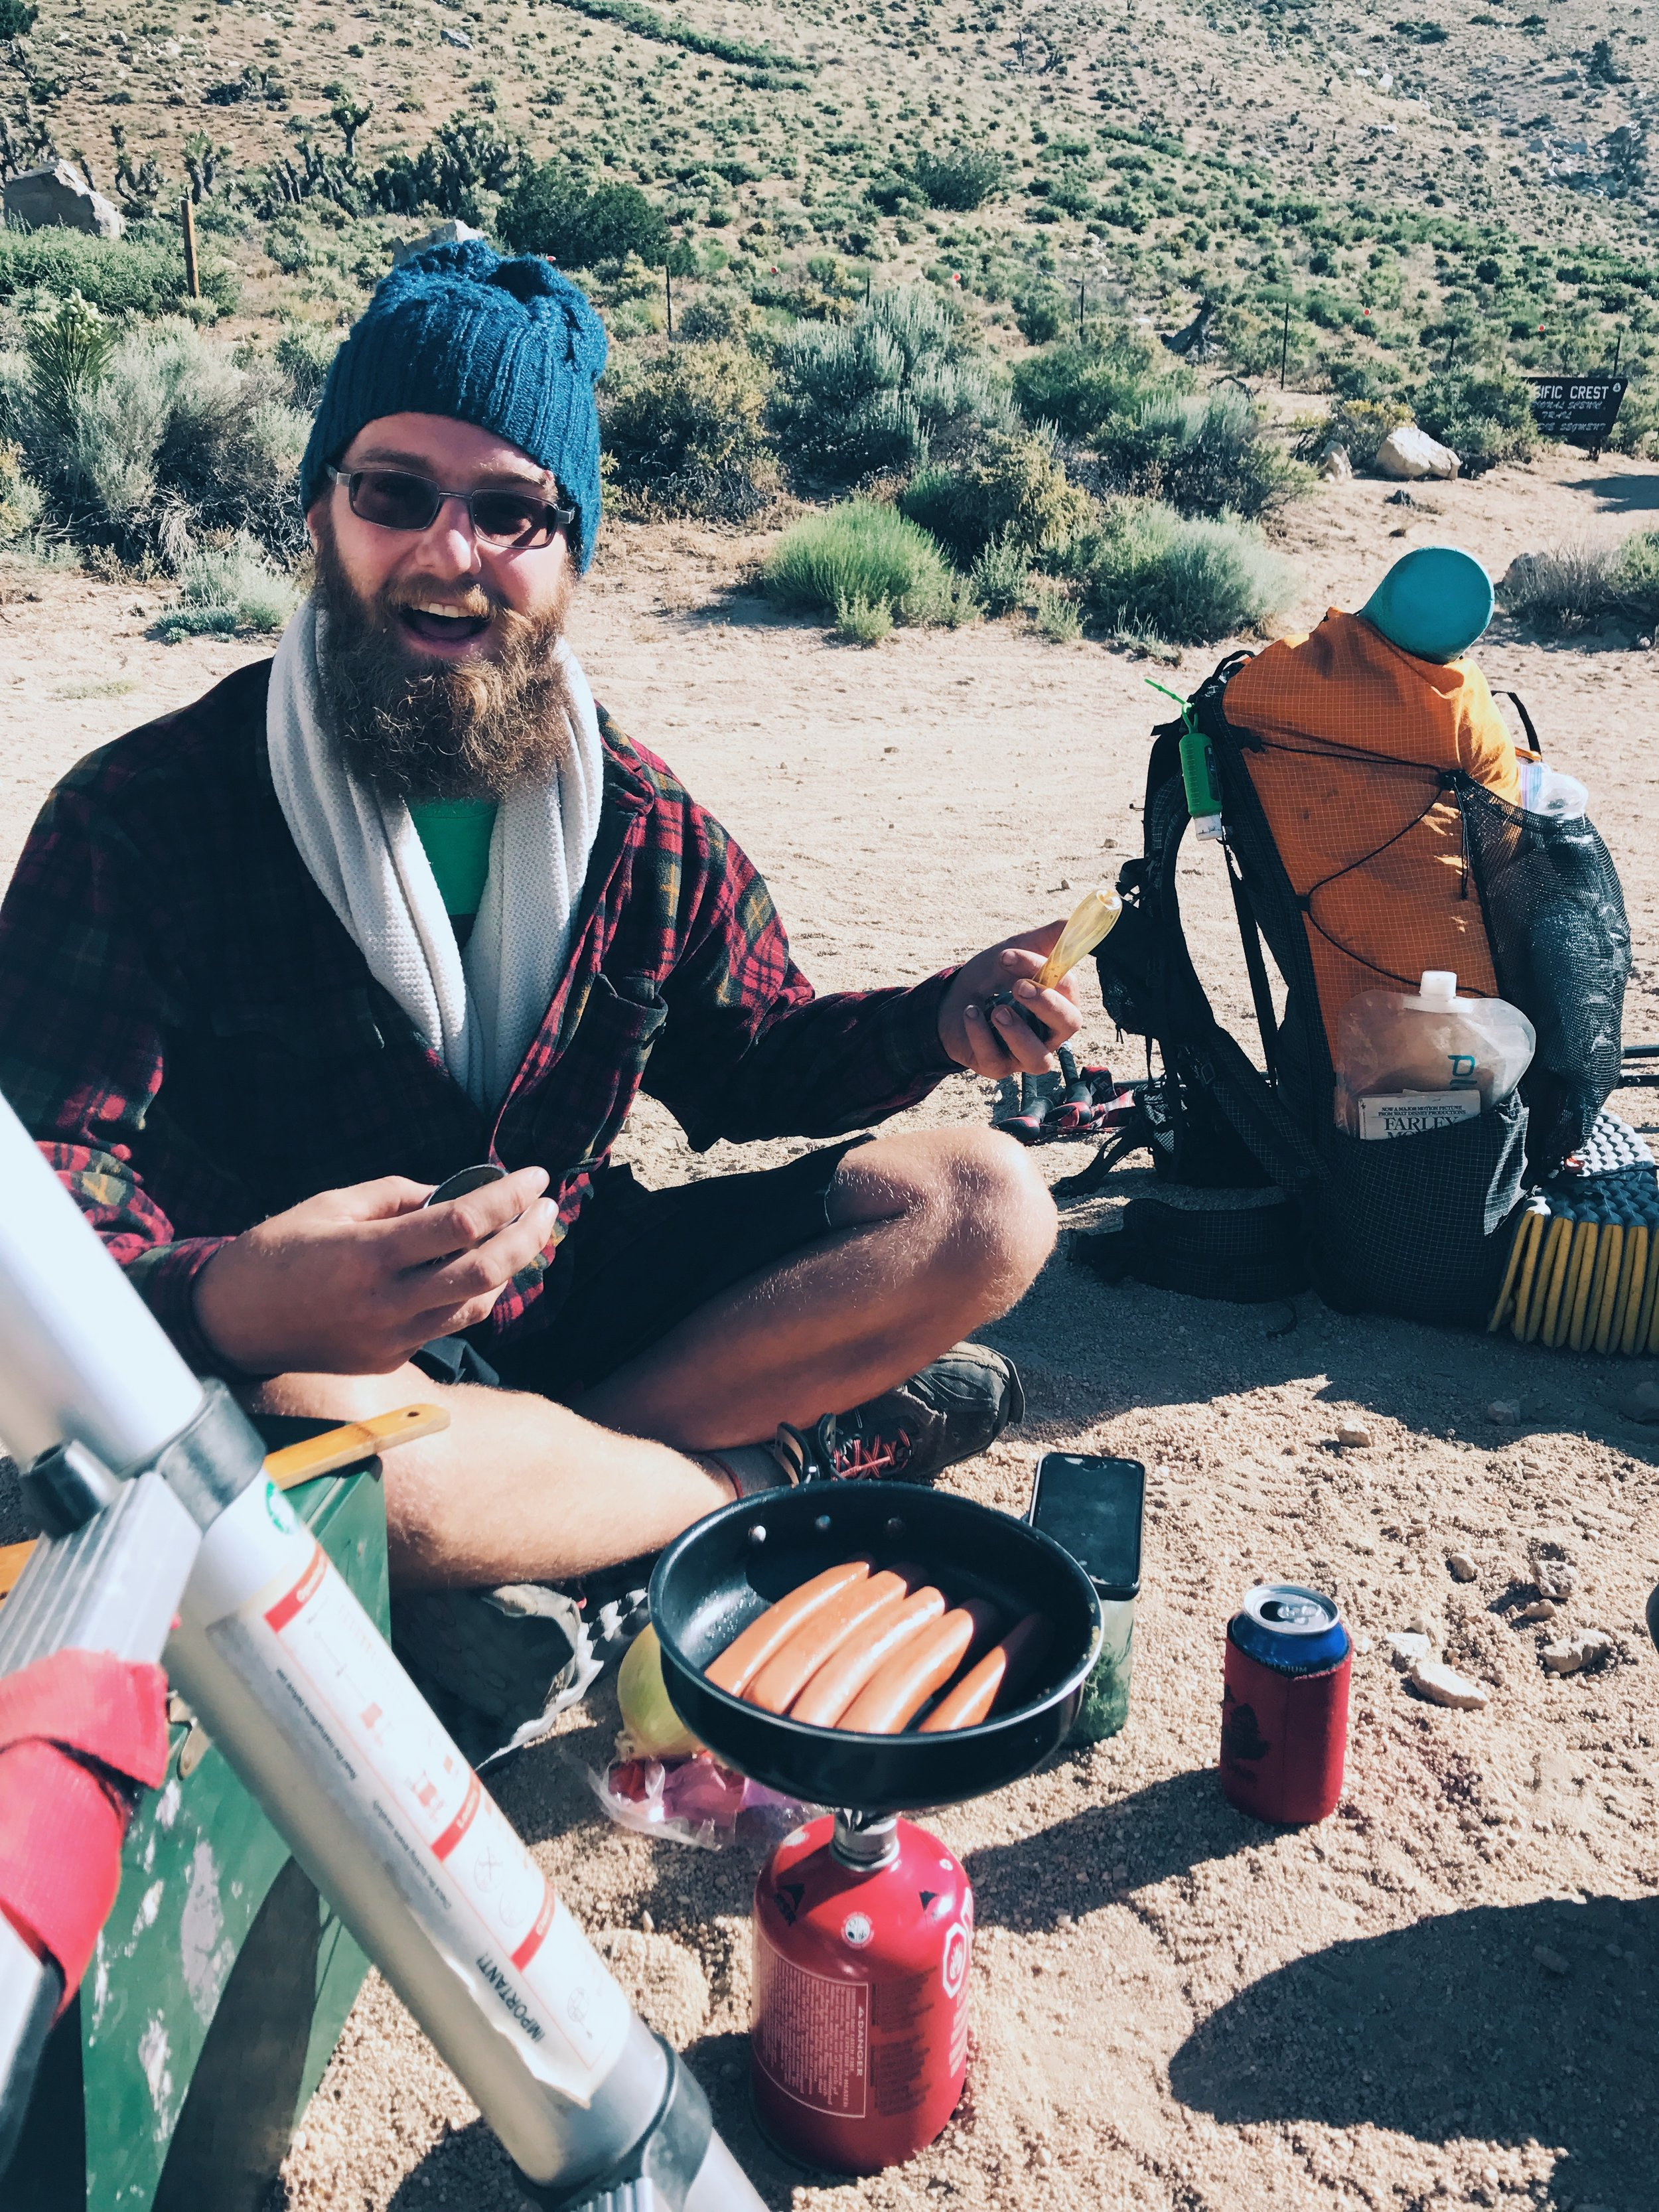 brewhike makes his own beer on the trail, one pint at a time